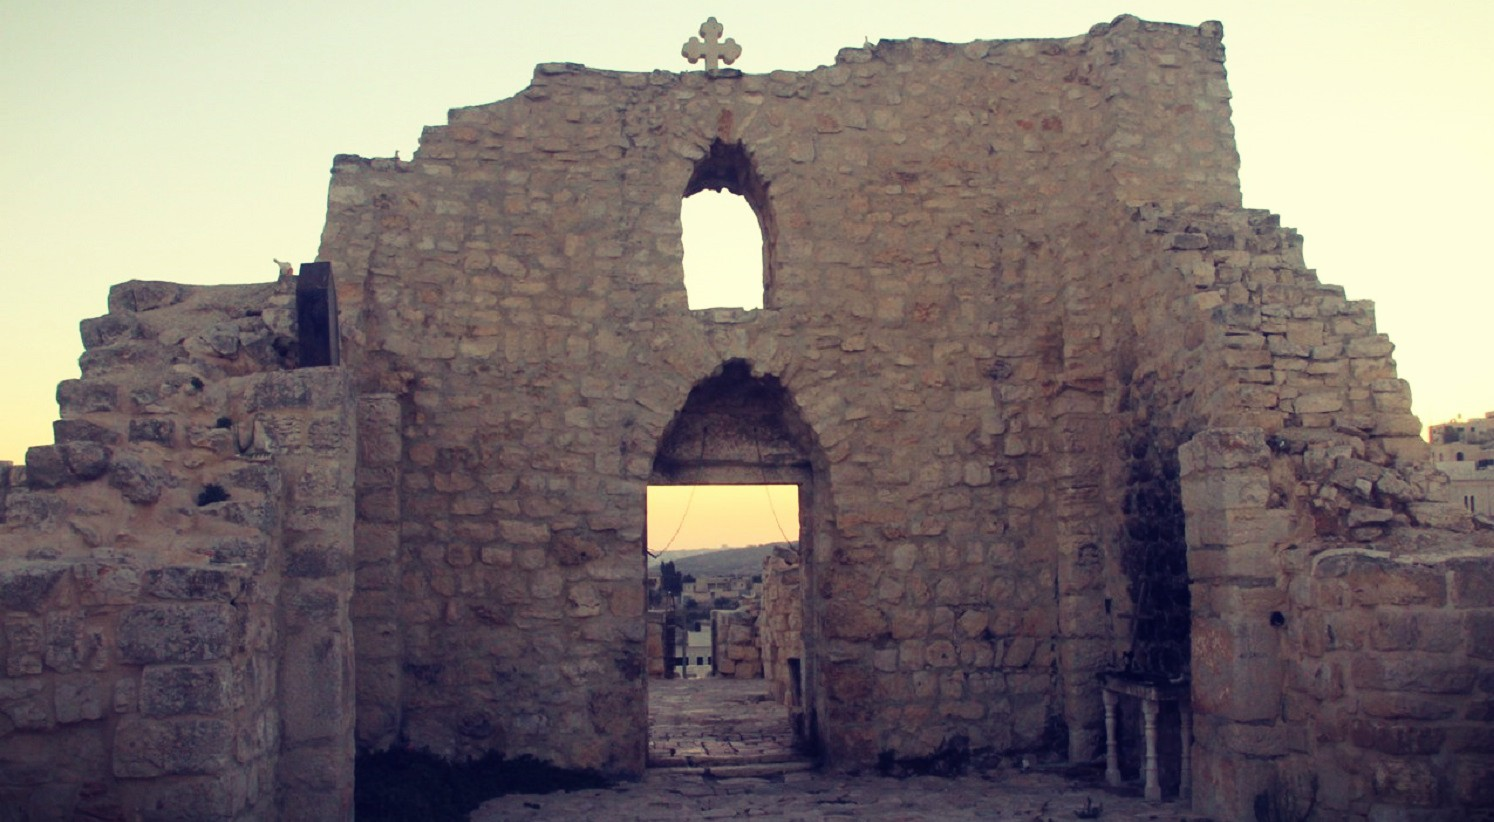 Experience Taybeh